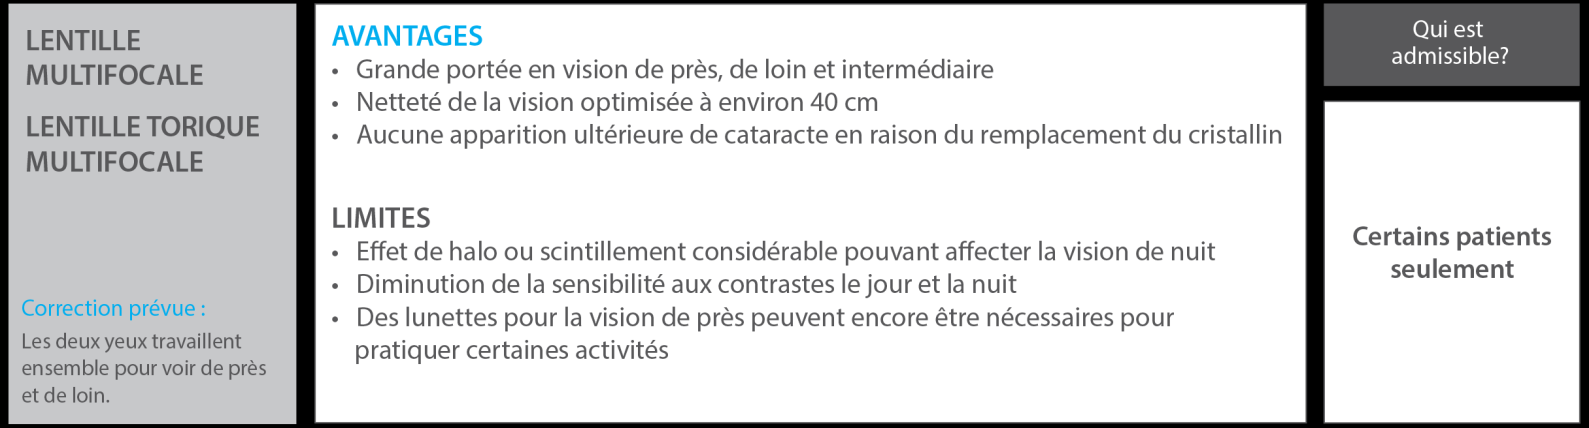 On recommande la lentille intraoculaire torique multifocale aux patients  astigmates. 8c78dc5757f9